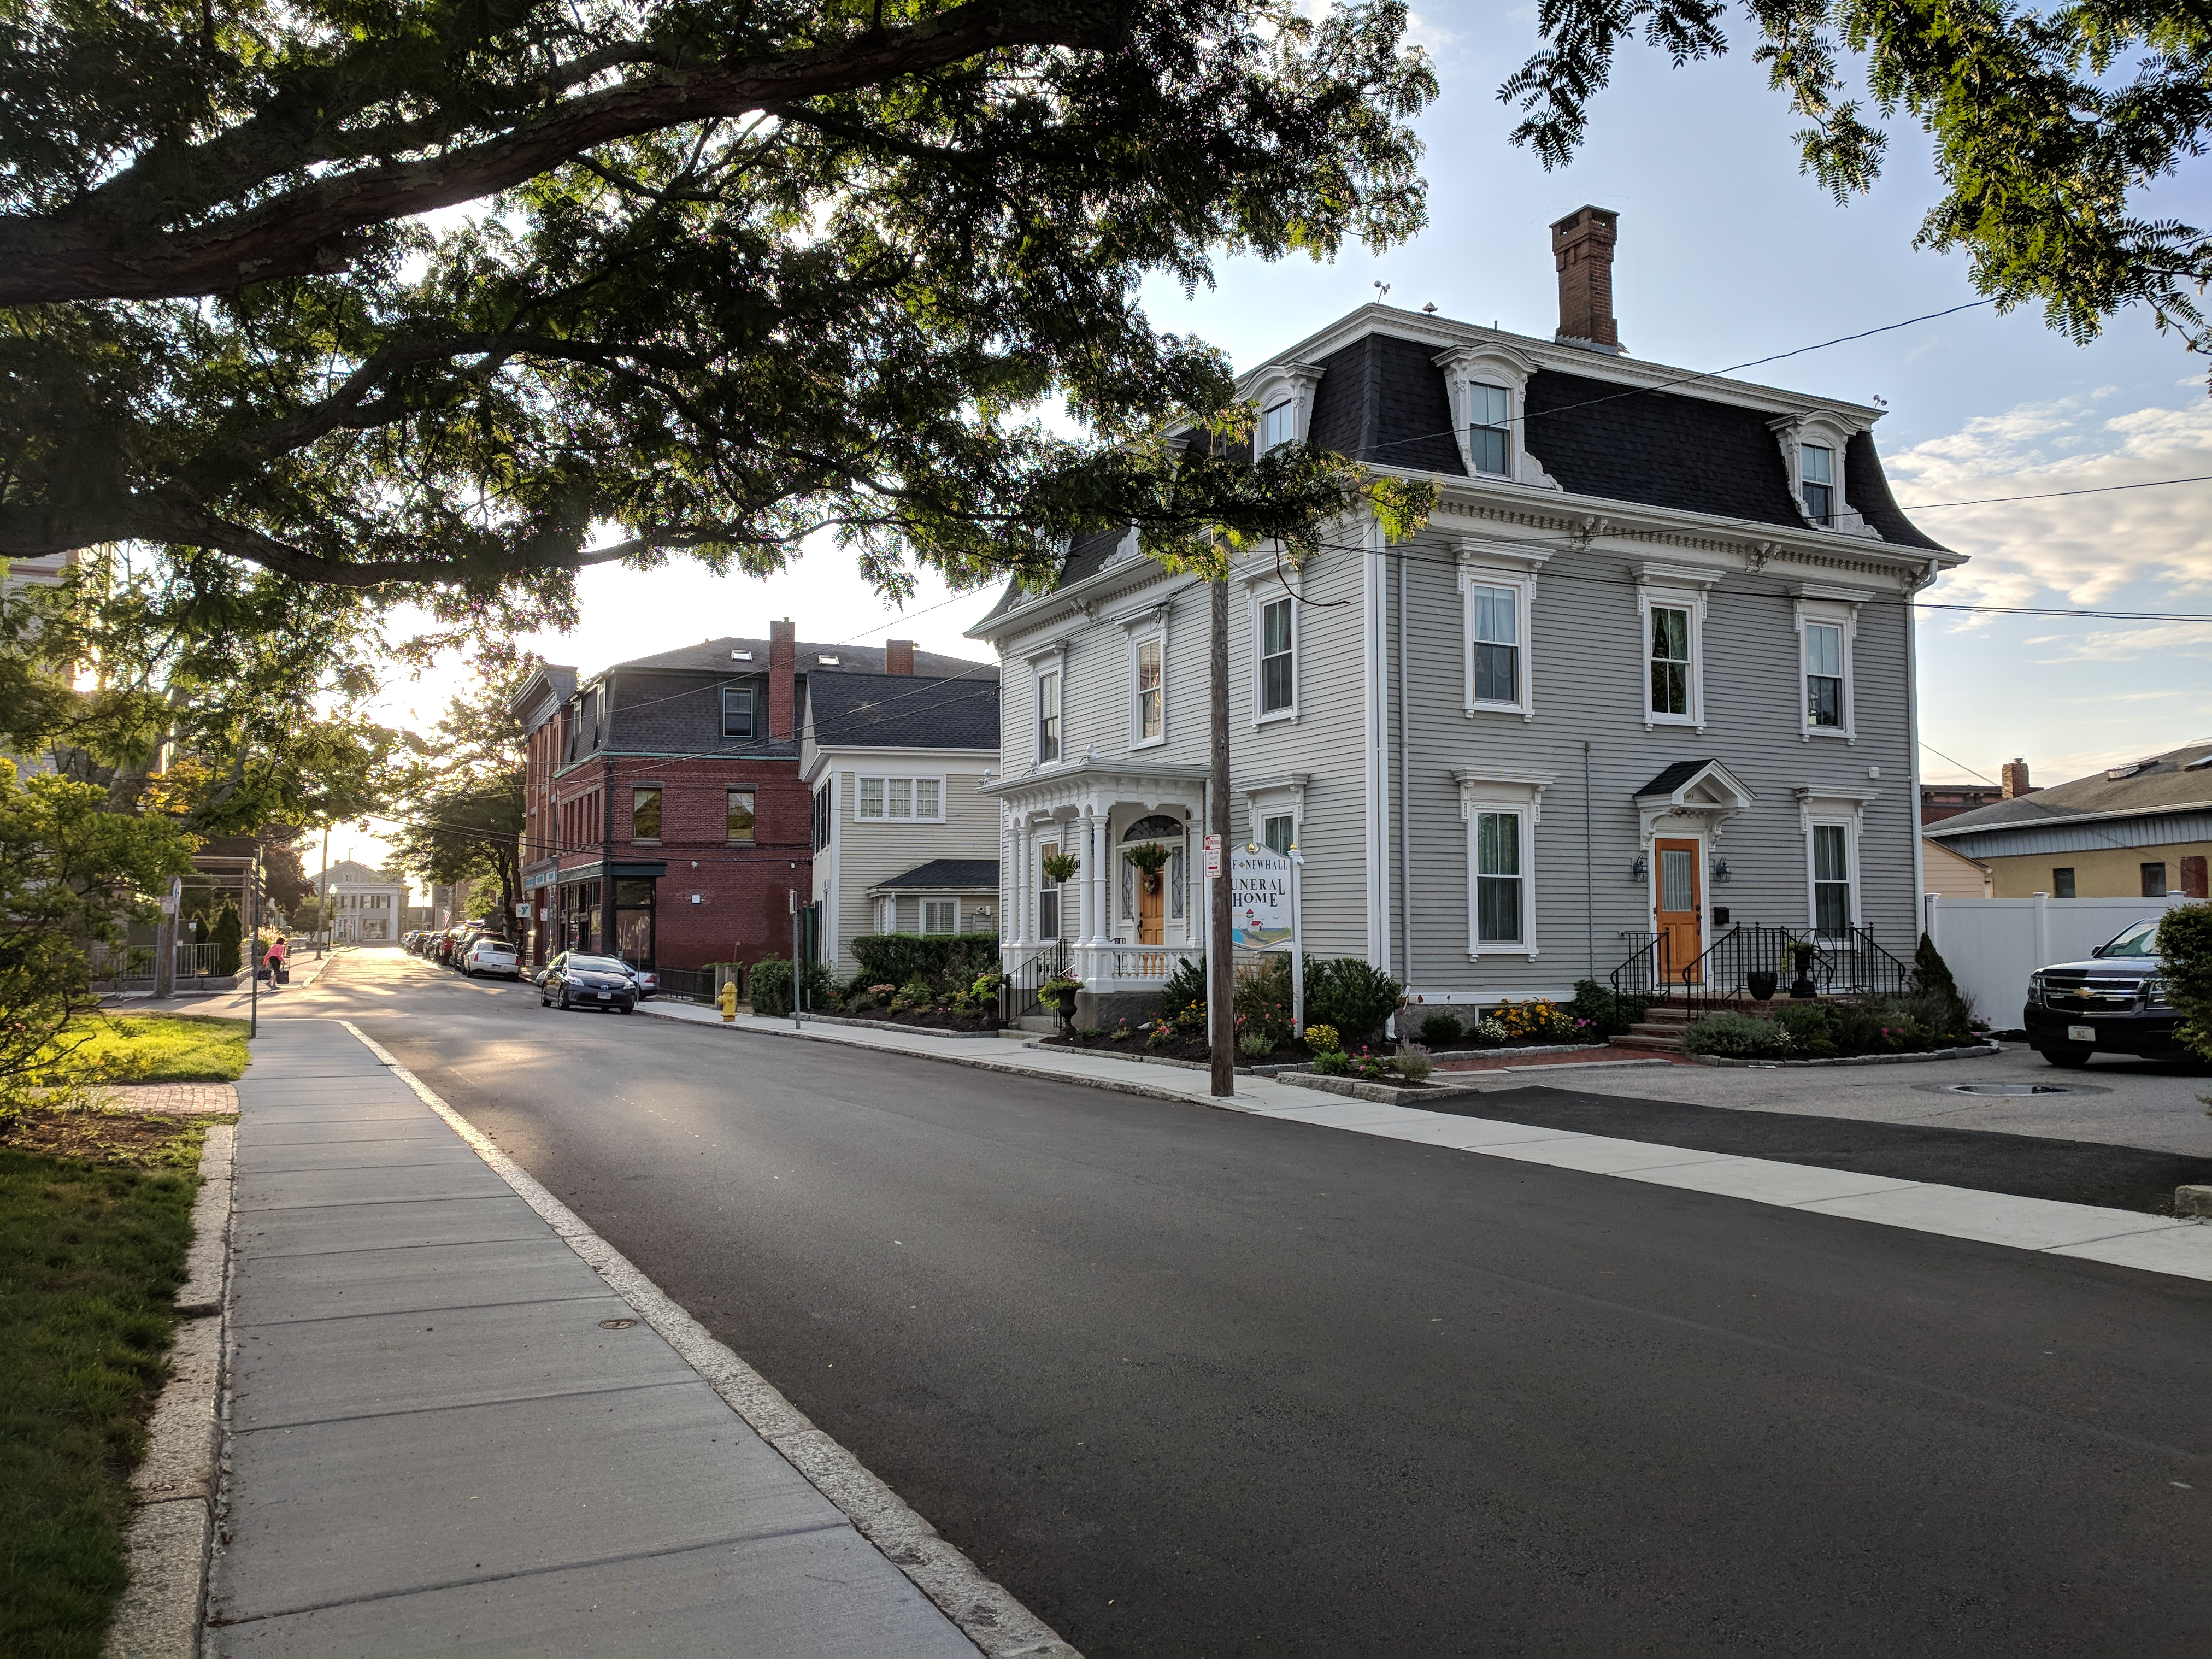 Pike Newhall Funeral Home Middle Street Gloucester Mass_20180820_©c ryan.jpg